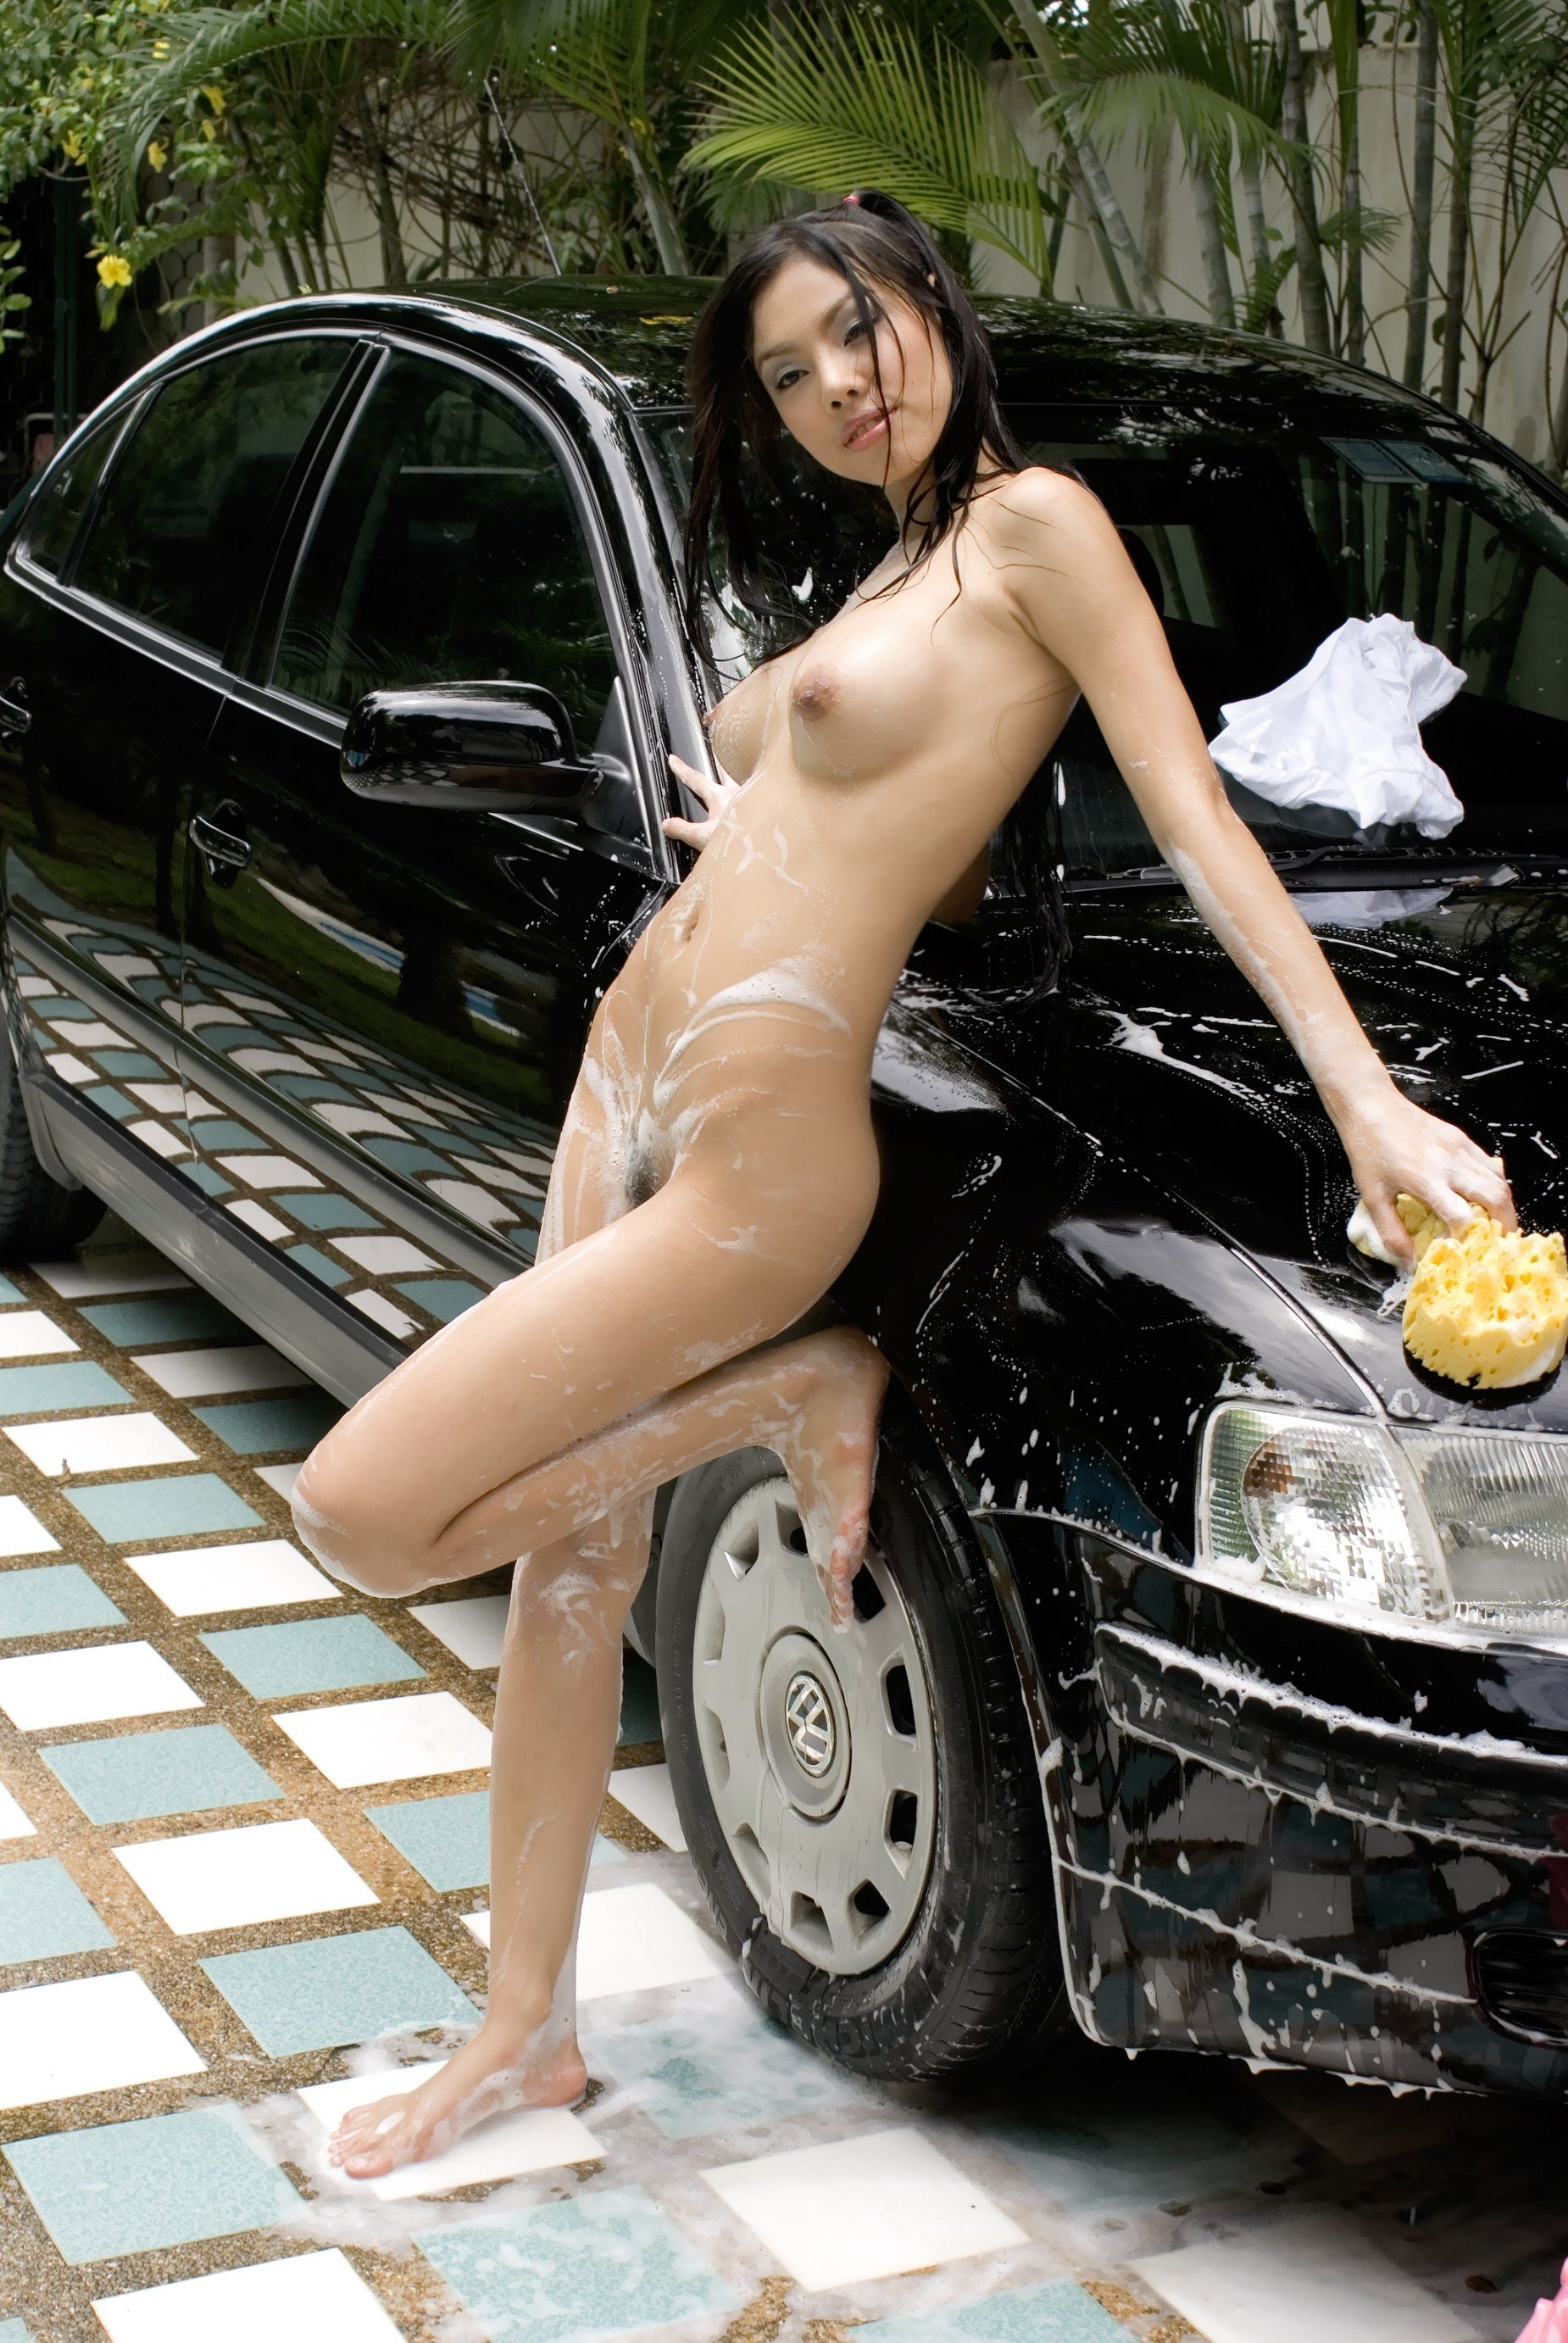 nude-girls-washing-cars-pic-sexy-girl-am-got-sikis-picture